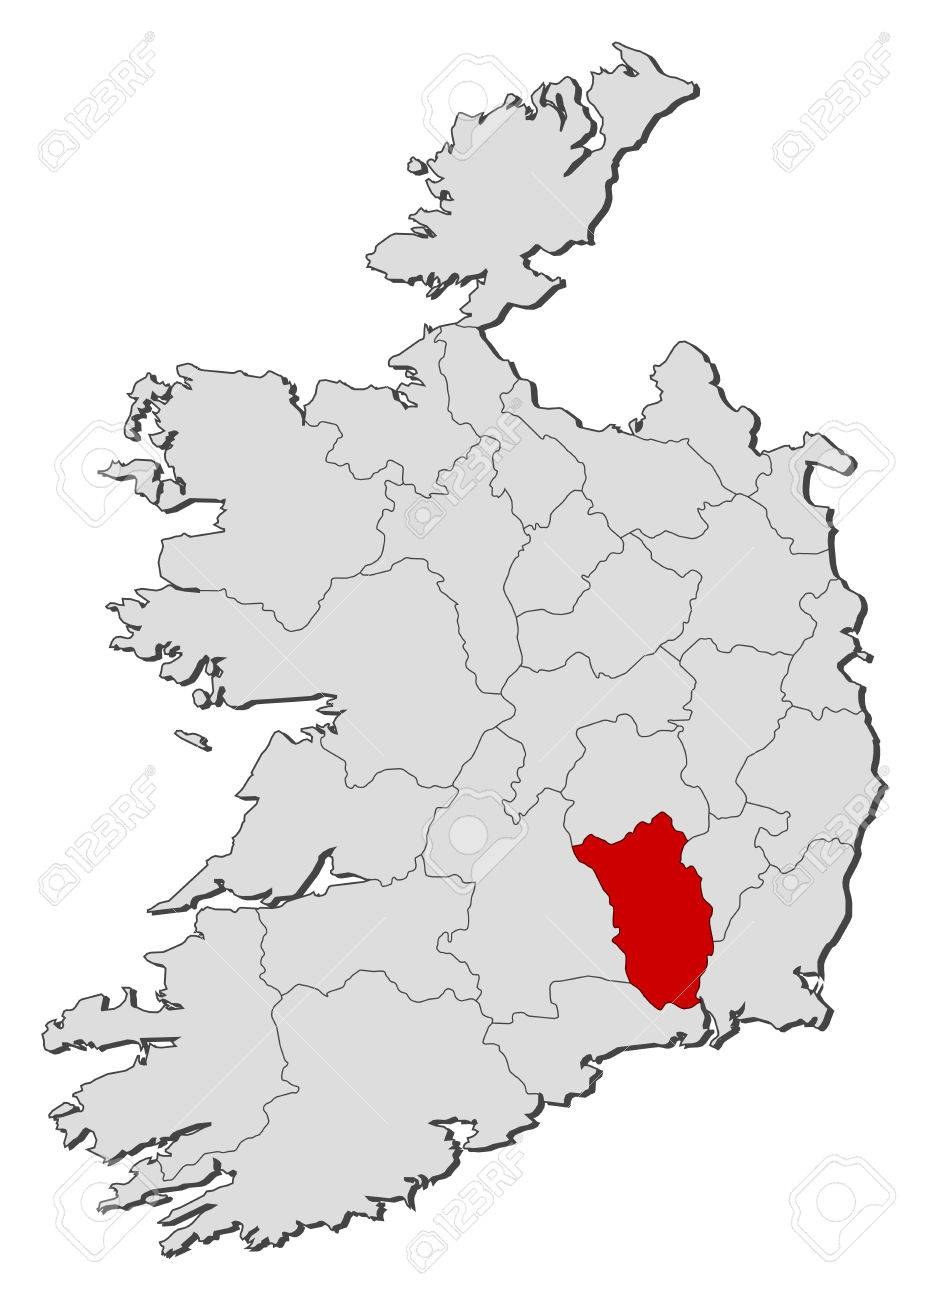 Map Of Ireland Showing Kilkenny.Map Of Ireland With The Provinces Kilkenny Is Highlighted Royalty